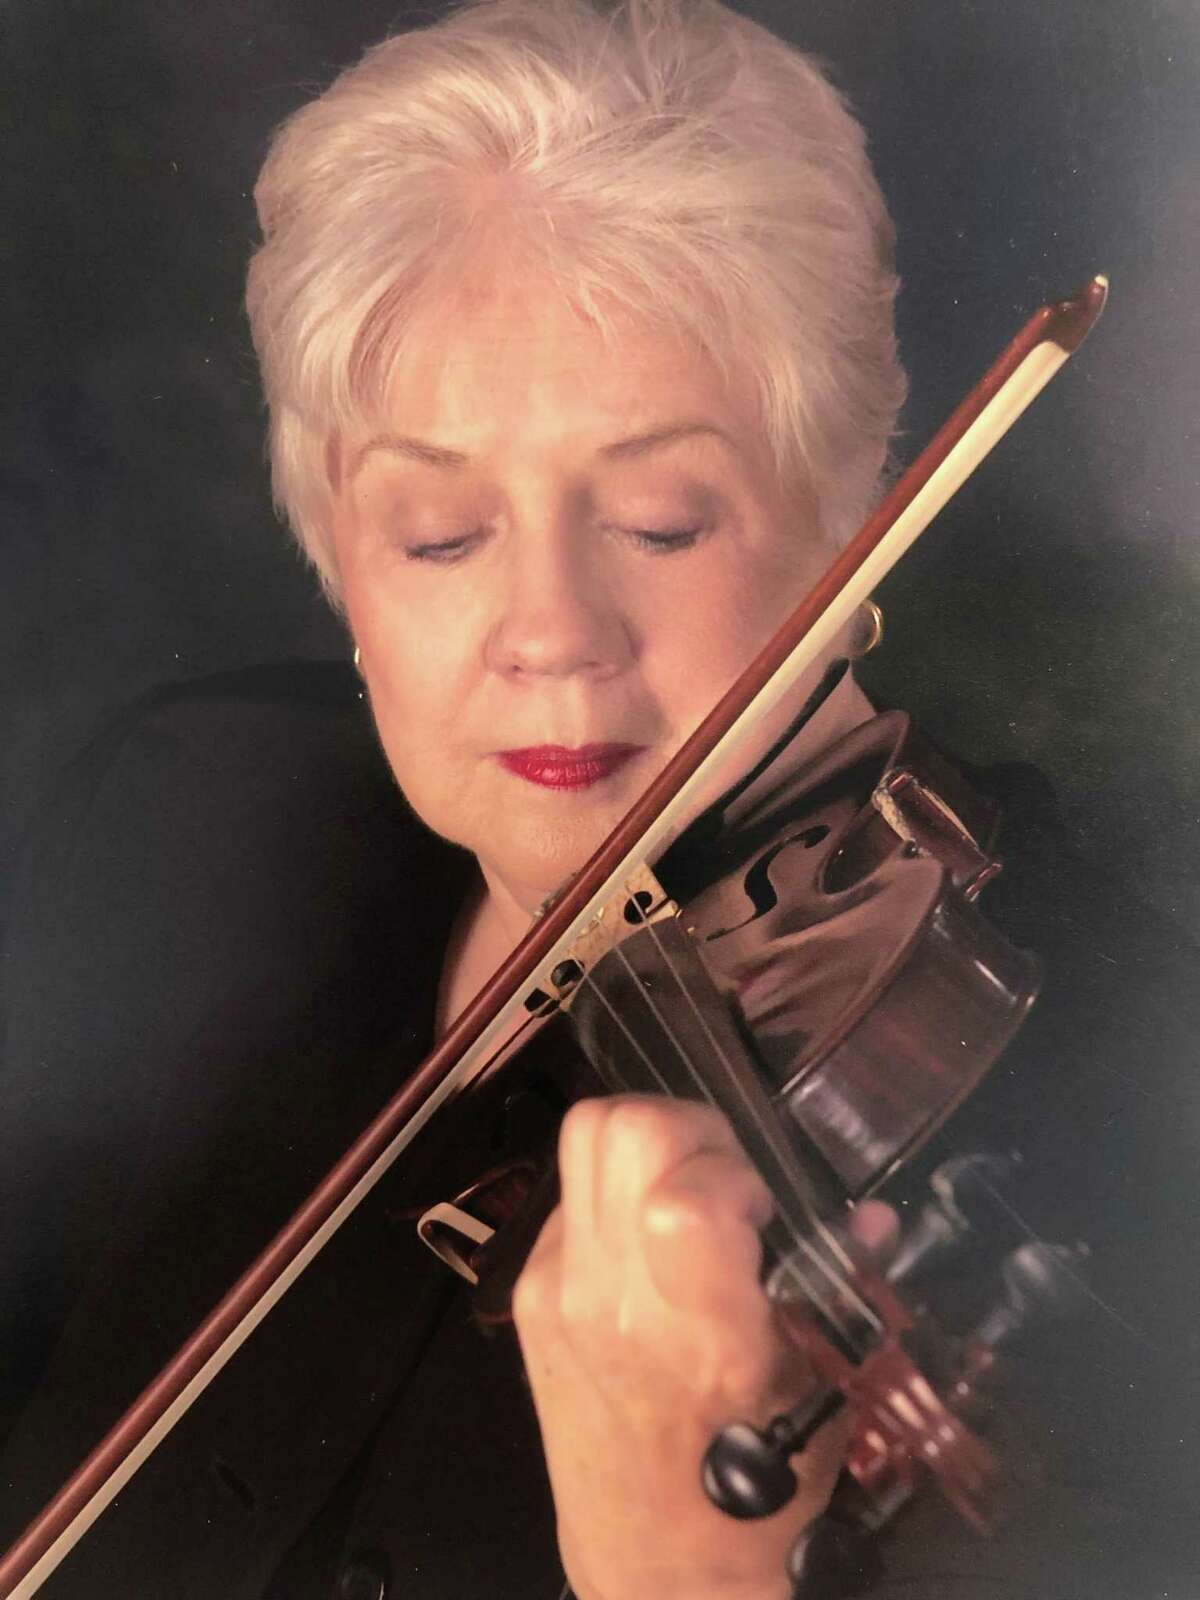 The Conroe Symphony Orchestra will celebrate the legacy of longtime player and founding member Mary Curtis Taylor at the orchestra's Oct. 9 concert. Taylor died on Sept. 3.